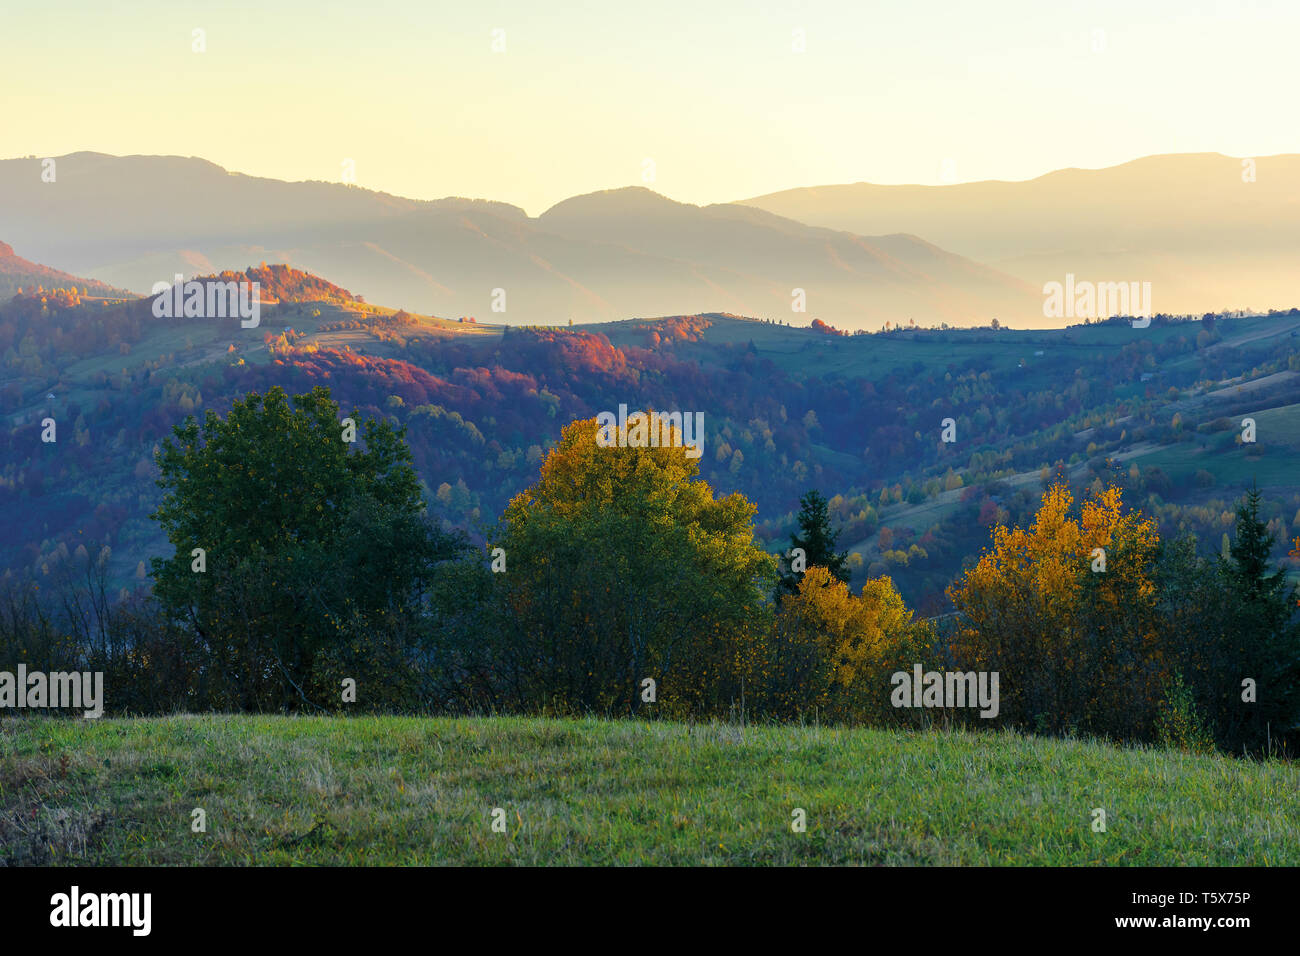 wonderful autumn landscape at dawn.  beautiful countryside scenery in mountains. trees in colorful foliage. rural area of carpathians. distant ridge i - Stock Image